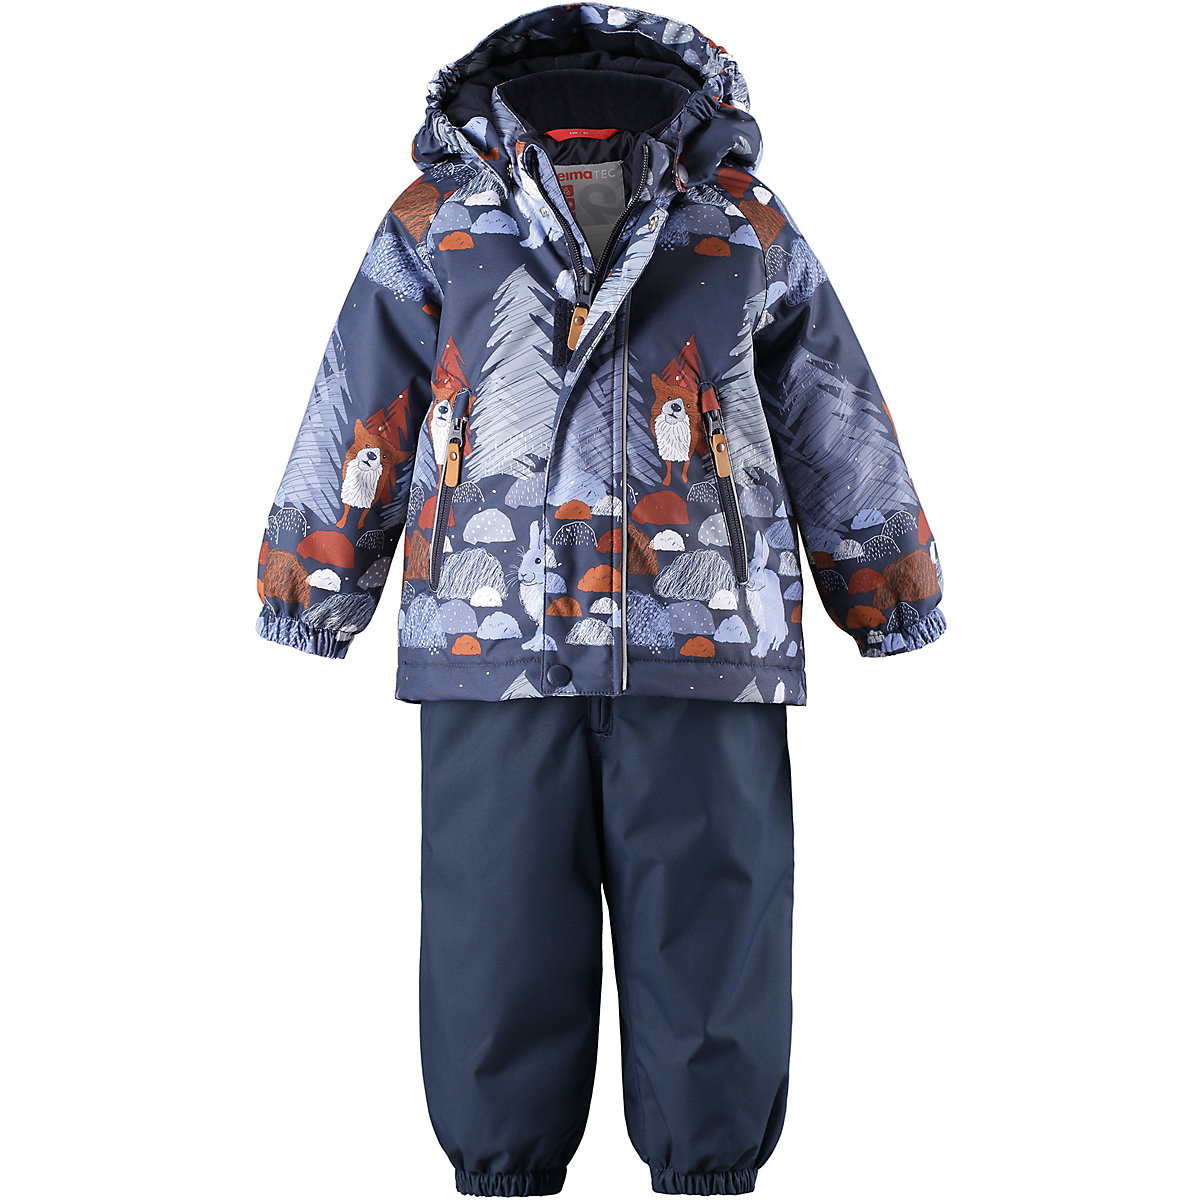 REIMA Childrens Sets 8688723 for boys children clothing winter stuff Suit set Jacket pants 2017 new brand fishing clothing sets men breathable upf 50 uv protection outdoor sportswear suit summer fishing shirt pants